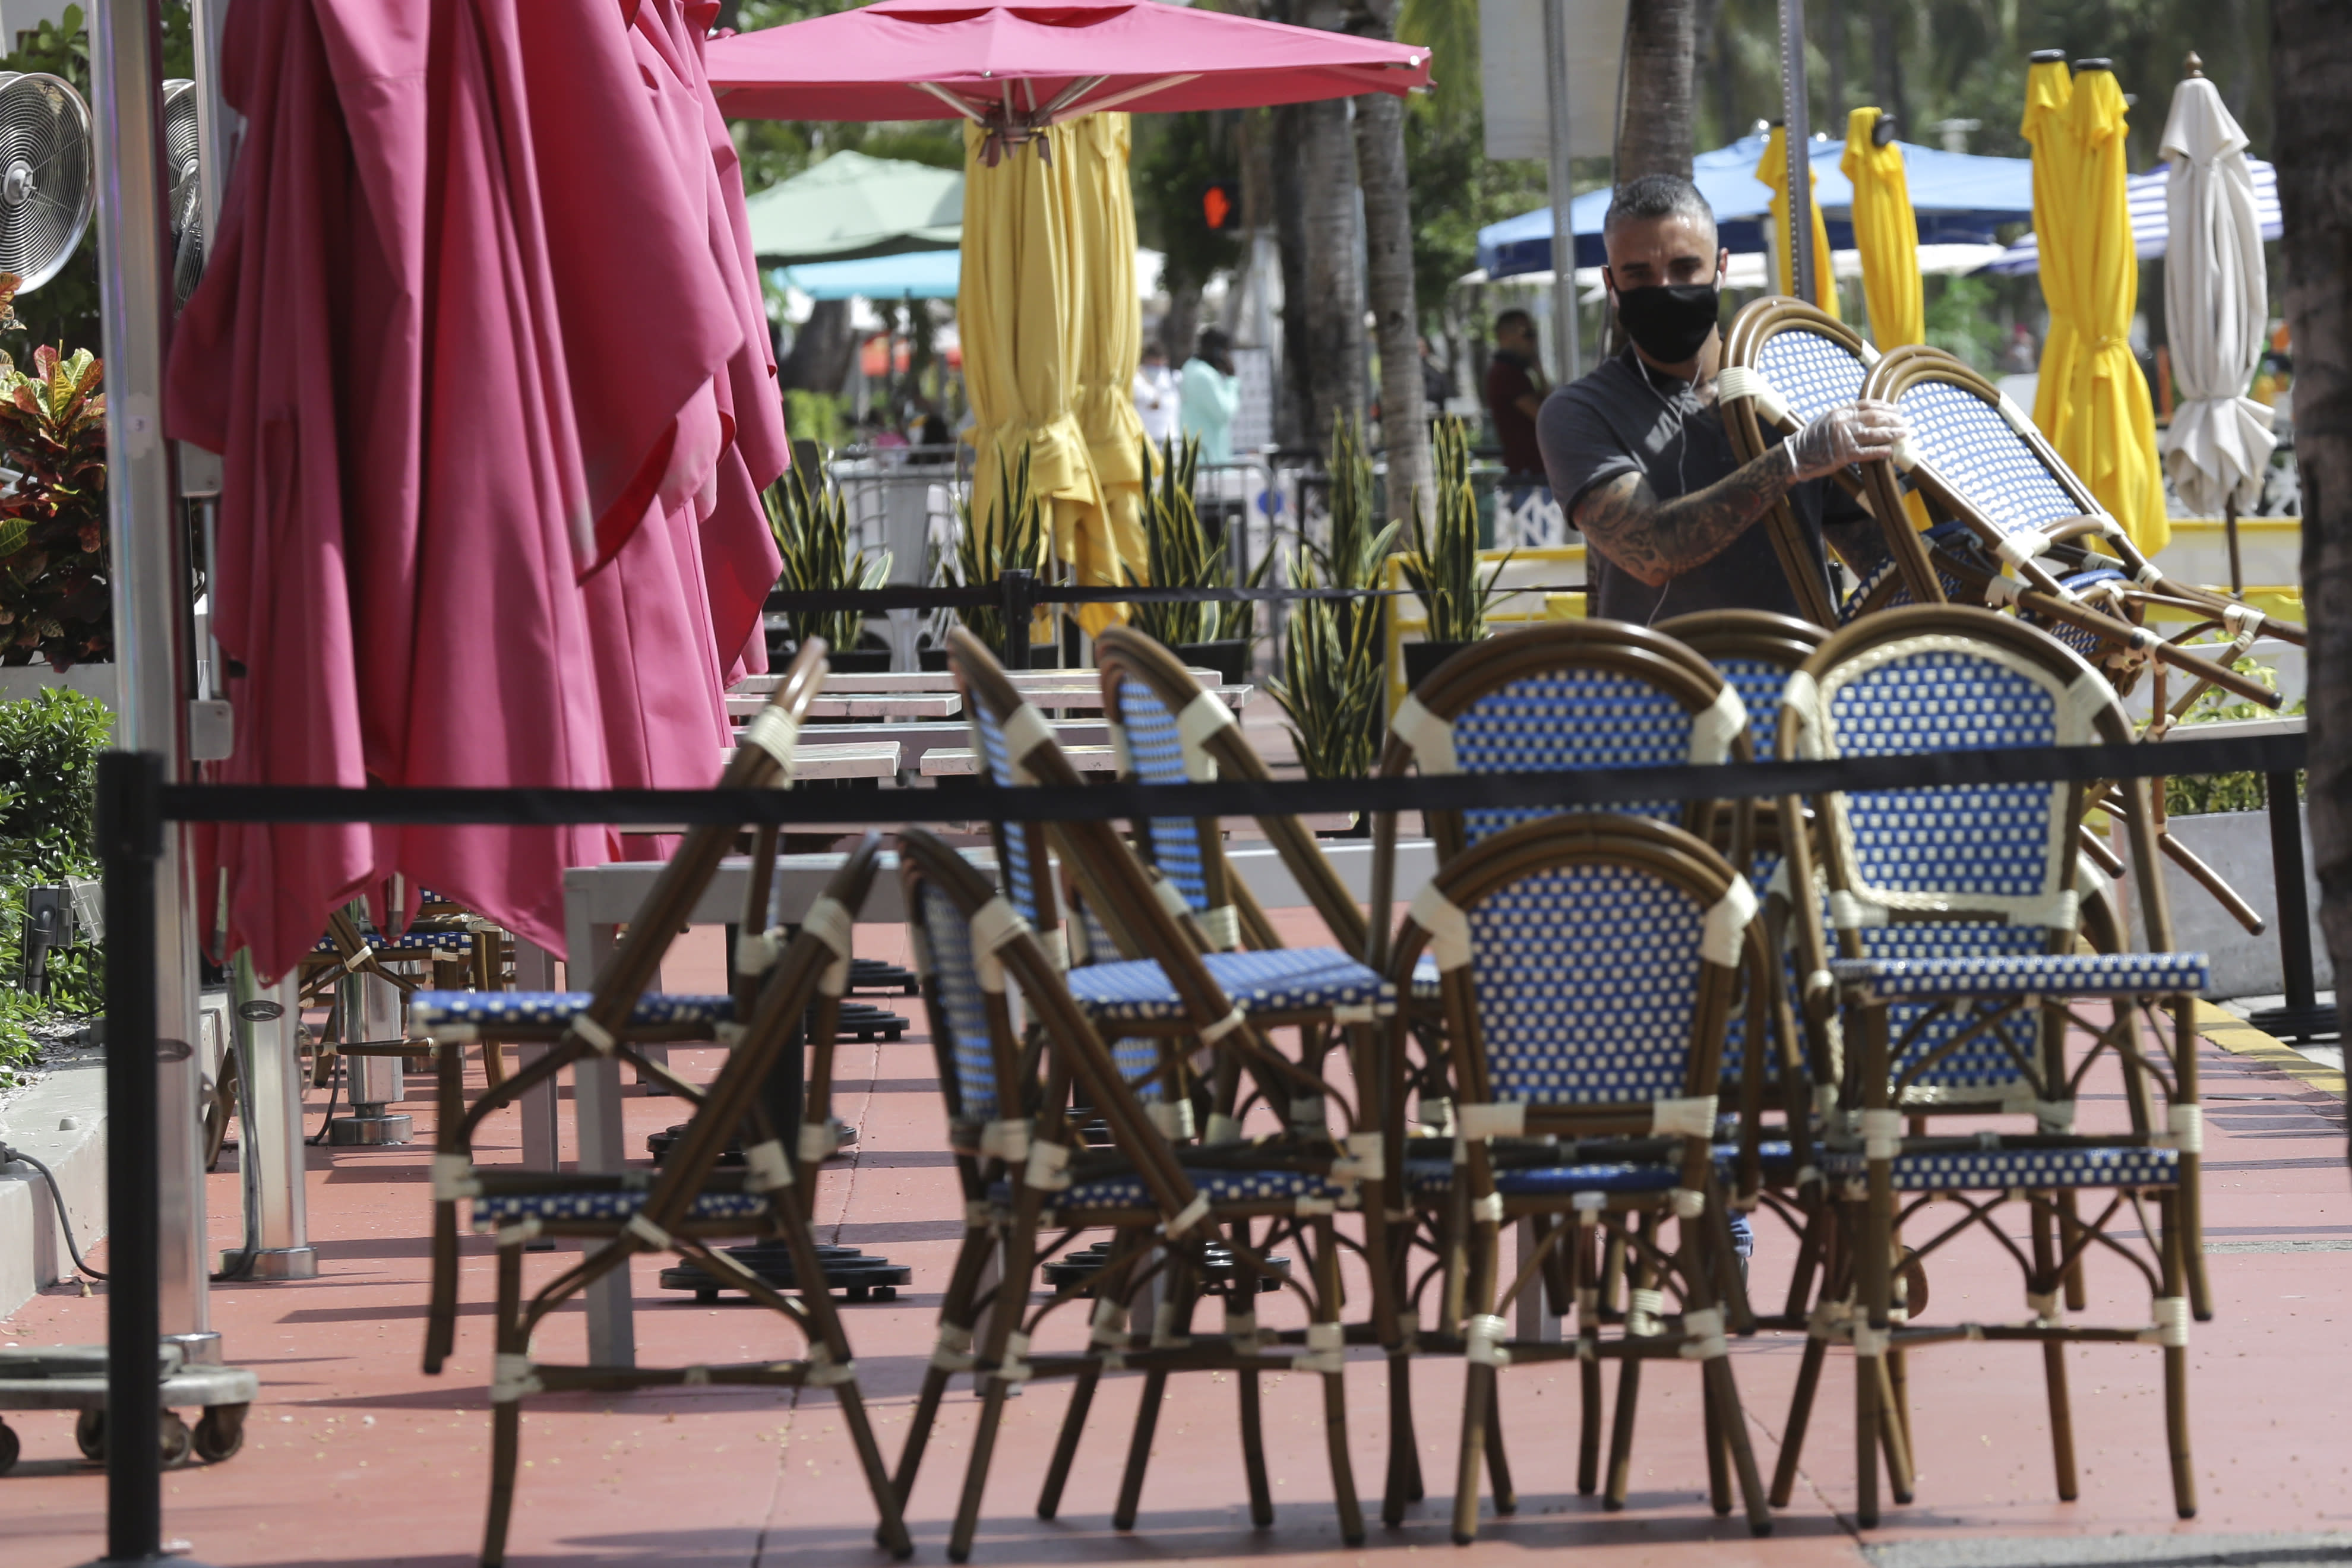 An employee at the Clevelander bar and restaurant on Ocean Drive stacks chairs as they have shut down due to public health concerns caused by COVID-19 during the coronavirus pandemic, Monday, July 13, 2020, in Miami Beach, Fla. (AP Photo/Lynne Sladky)